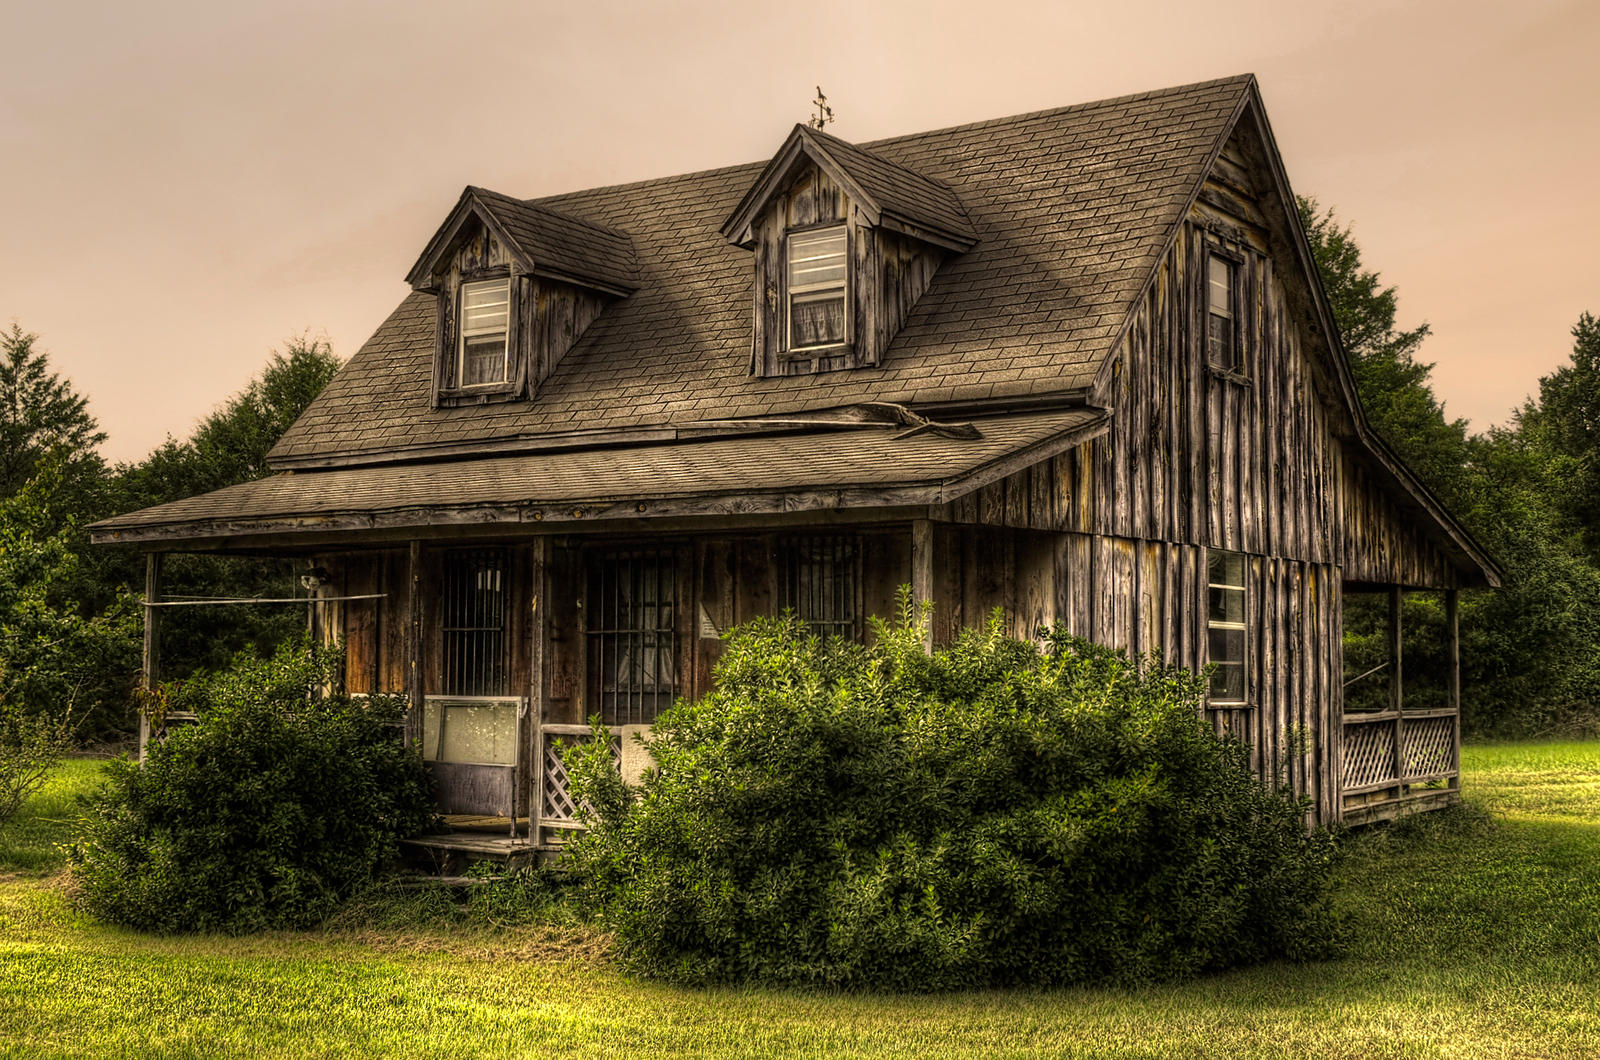 House HDR by joelht74